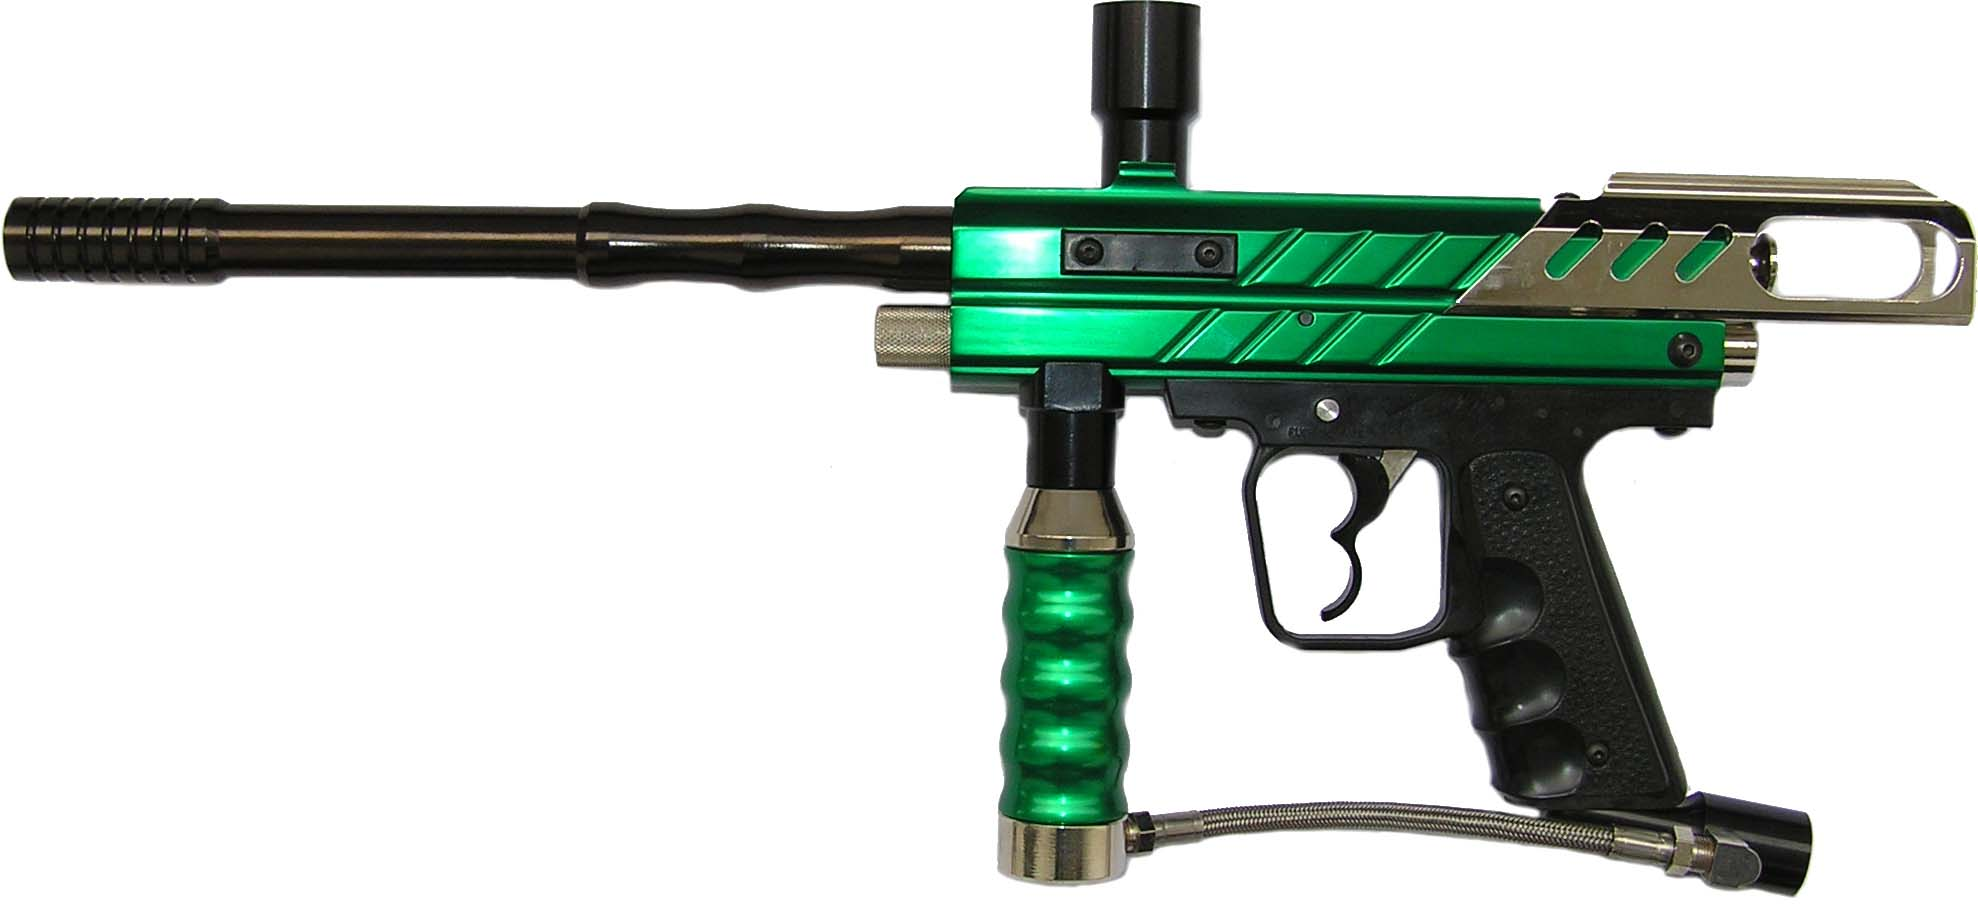 paintball gun - photo #4